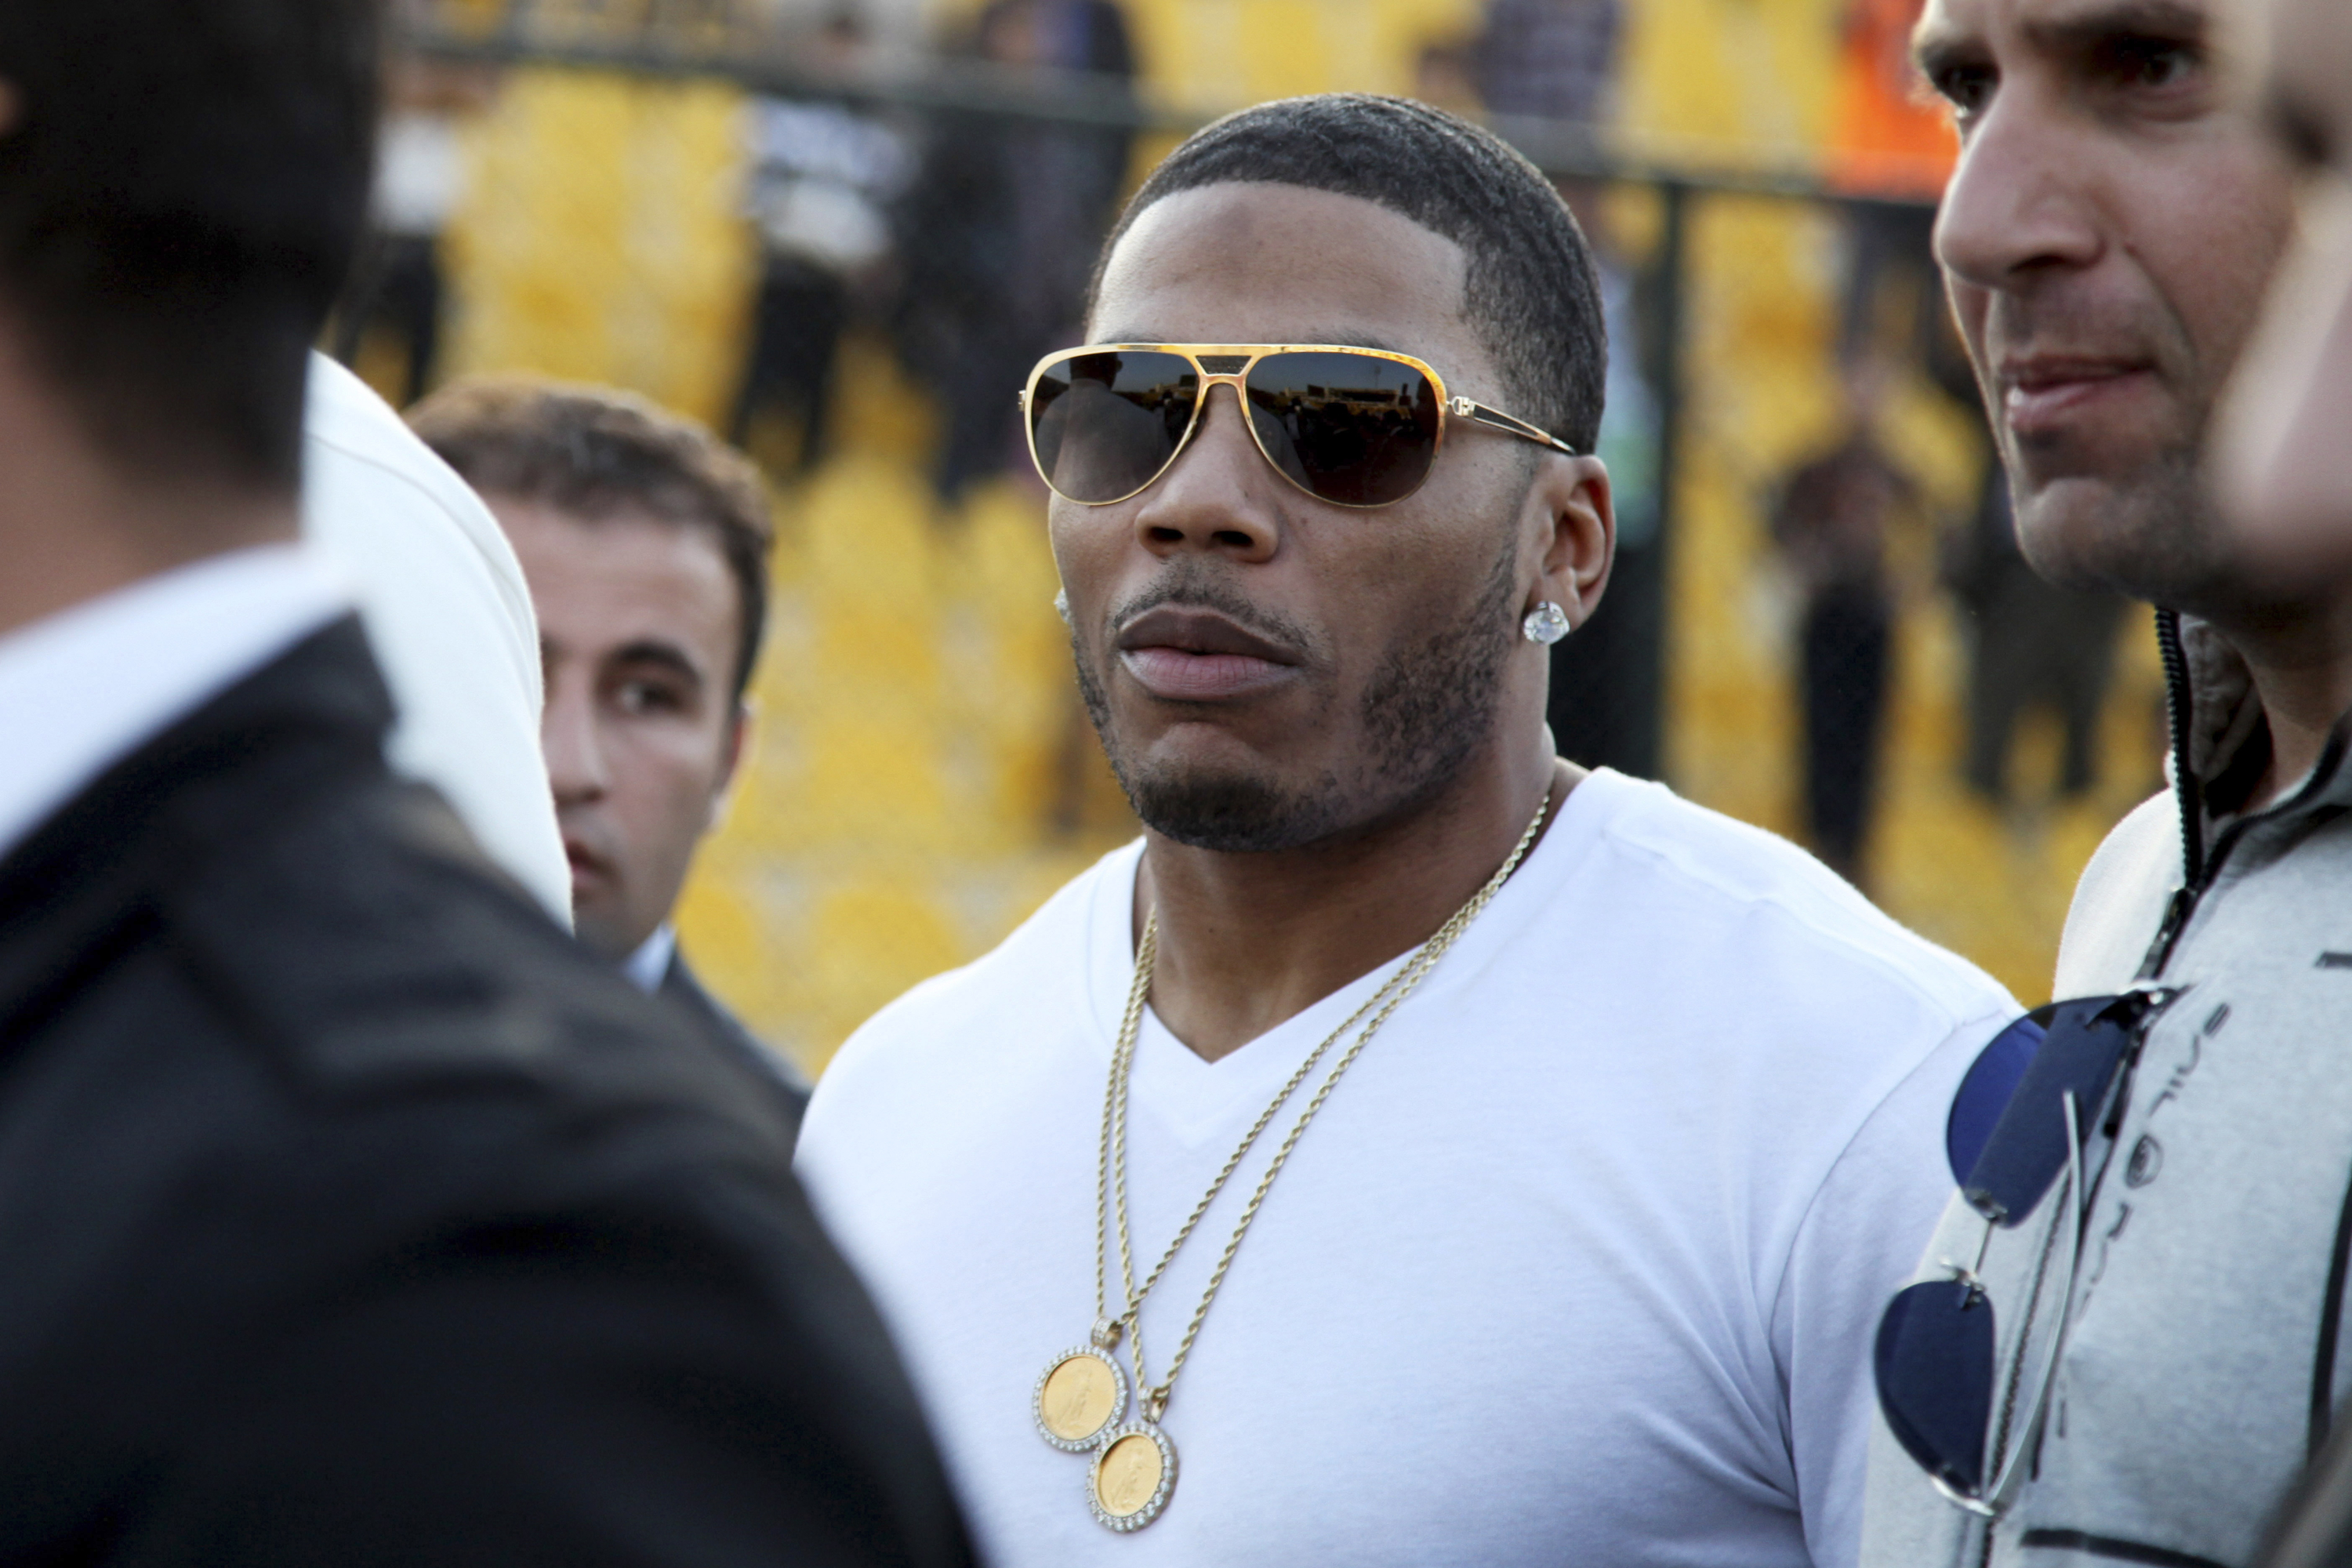 FILE- In this March 13, 2015, file photo, rapper Nelly approaches the stage for a concert in Irbil, northern Iraq. Prosecutors in Washington state say they cannot proceed with a rape case against the rapper Nelly because the accuser is not cooperating. The woman said Nelly raped her on his tour bus in October in a Seattle suburb, and police arrested him. Prosecutors said Thursday, Dec. 14, 2017, that they've reviewed the investigation, but without the woman's help, they can't move forward with the case. (AP Photo/Seivan M. Salim, File)